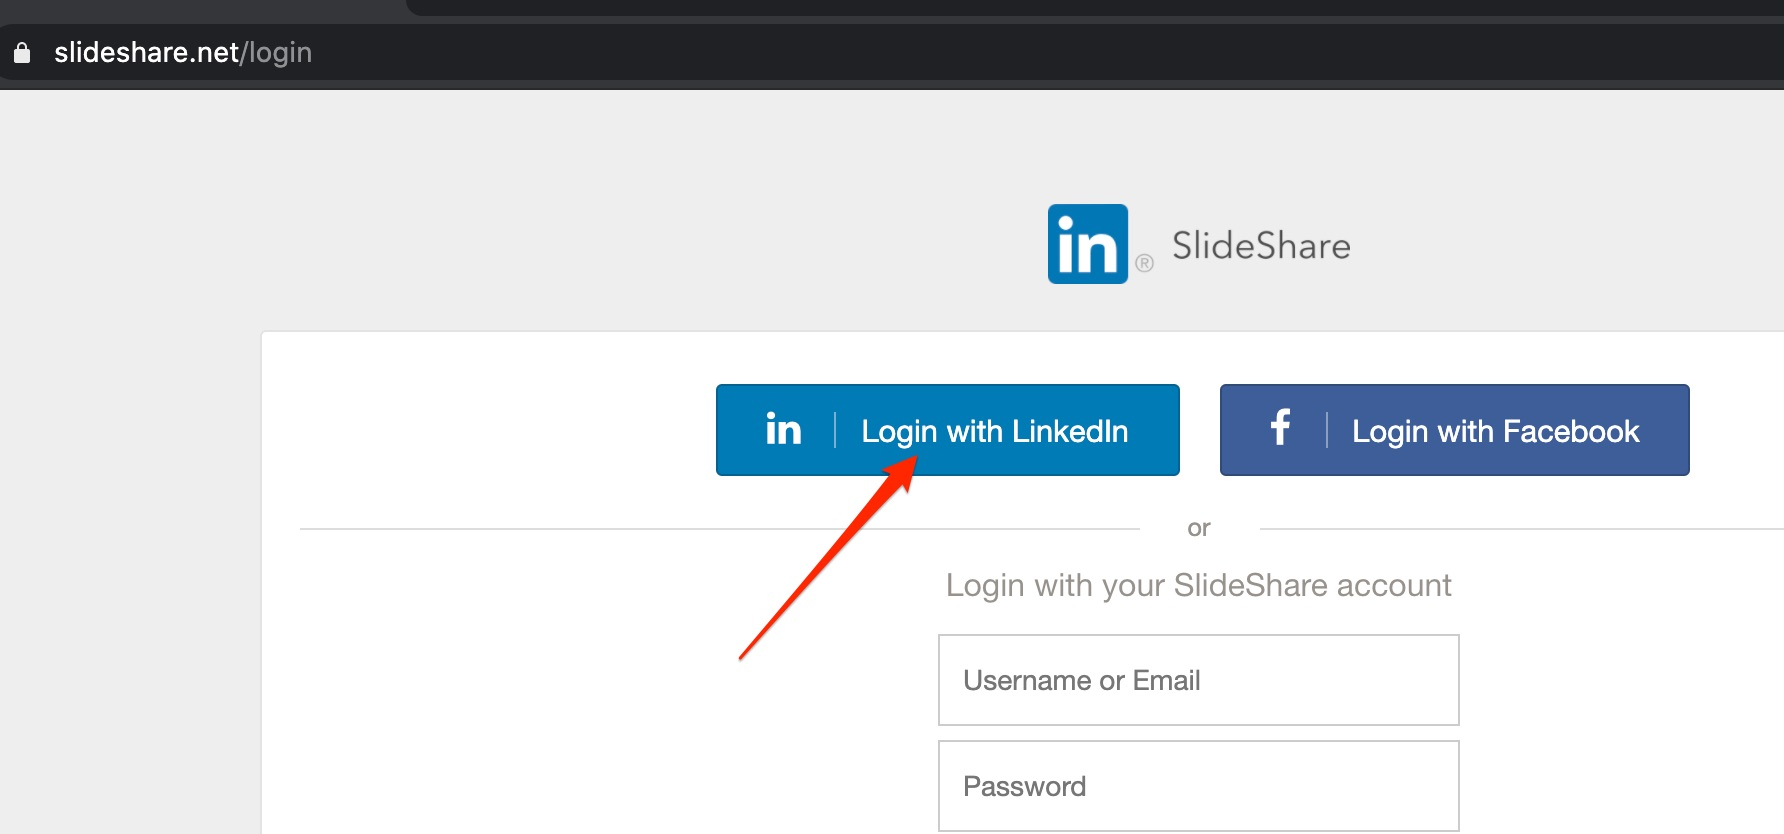 Slideshare-for-Agent-Recruiting-Log-In-with-LinkedIn-Credentials